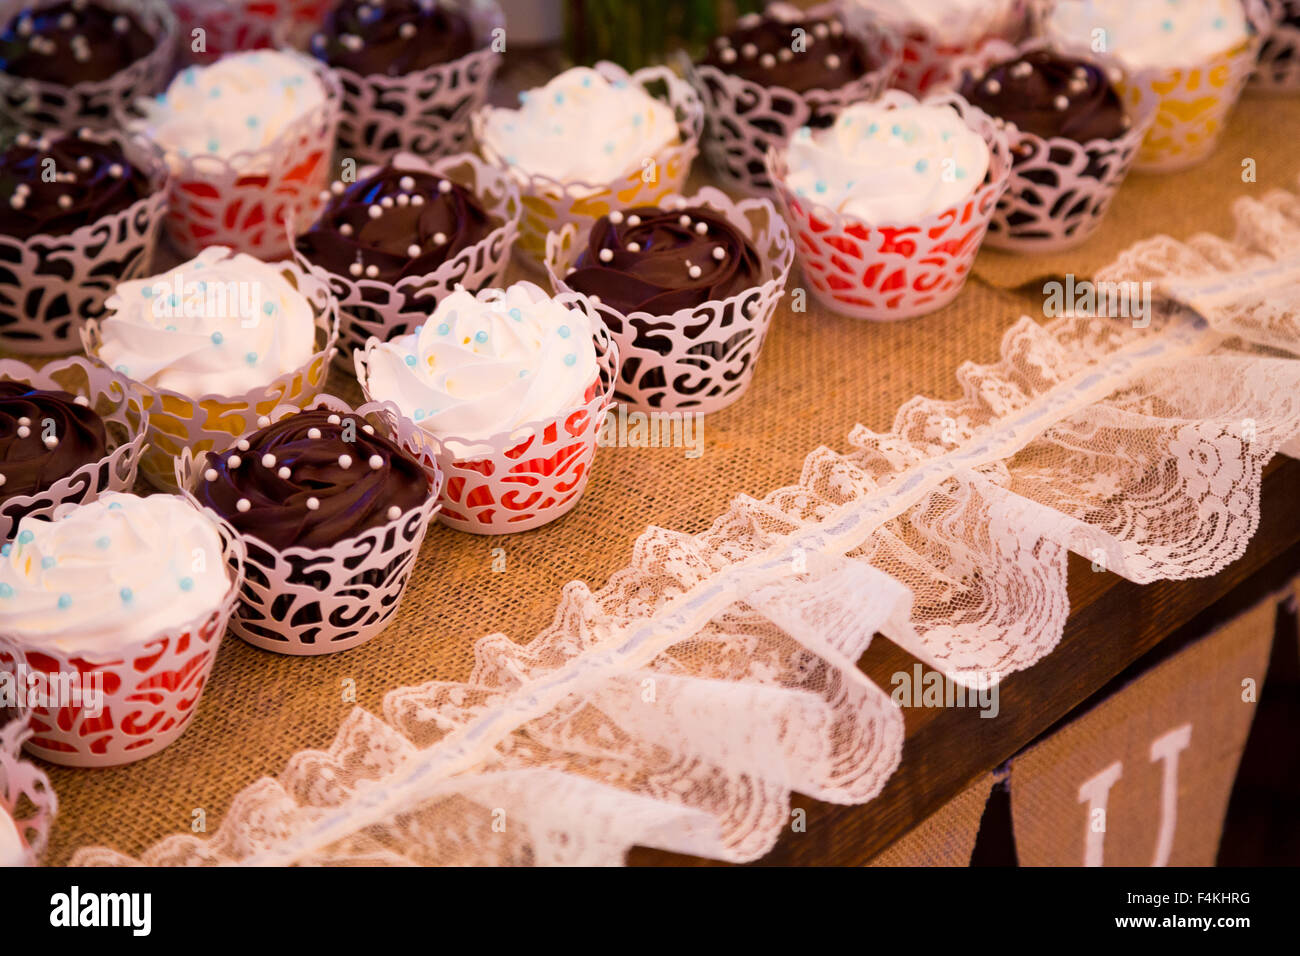 Cupcakes In Vanilla And Chocolate At A Wedding Reception Dessert